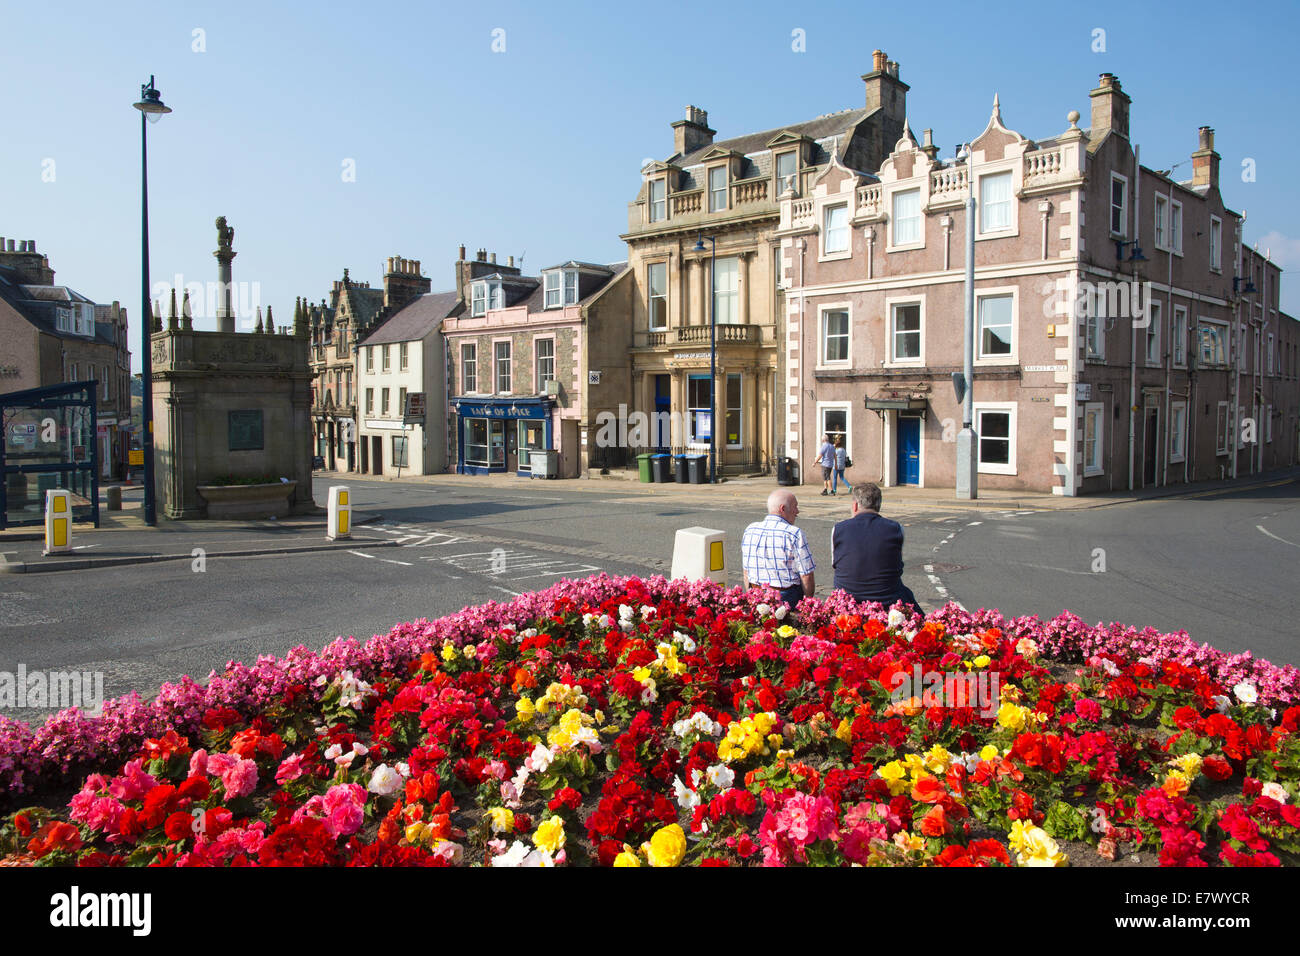 Market Place, Selkirk, The Royal and Ancient Burgh of Selkirk, Scottish Borders, Scotland, UK - Stock Image